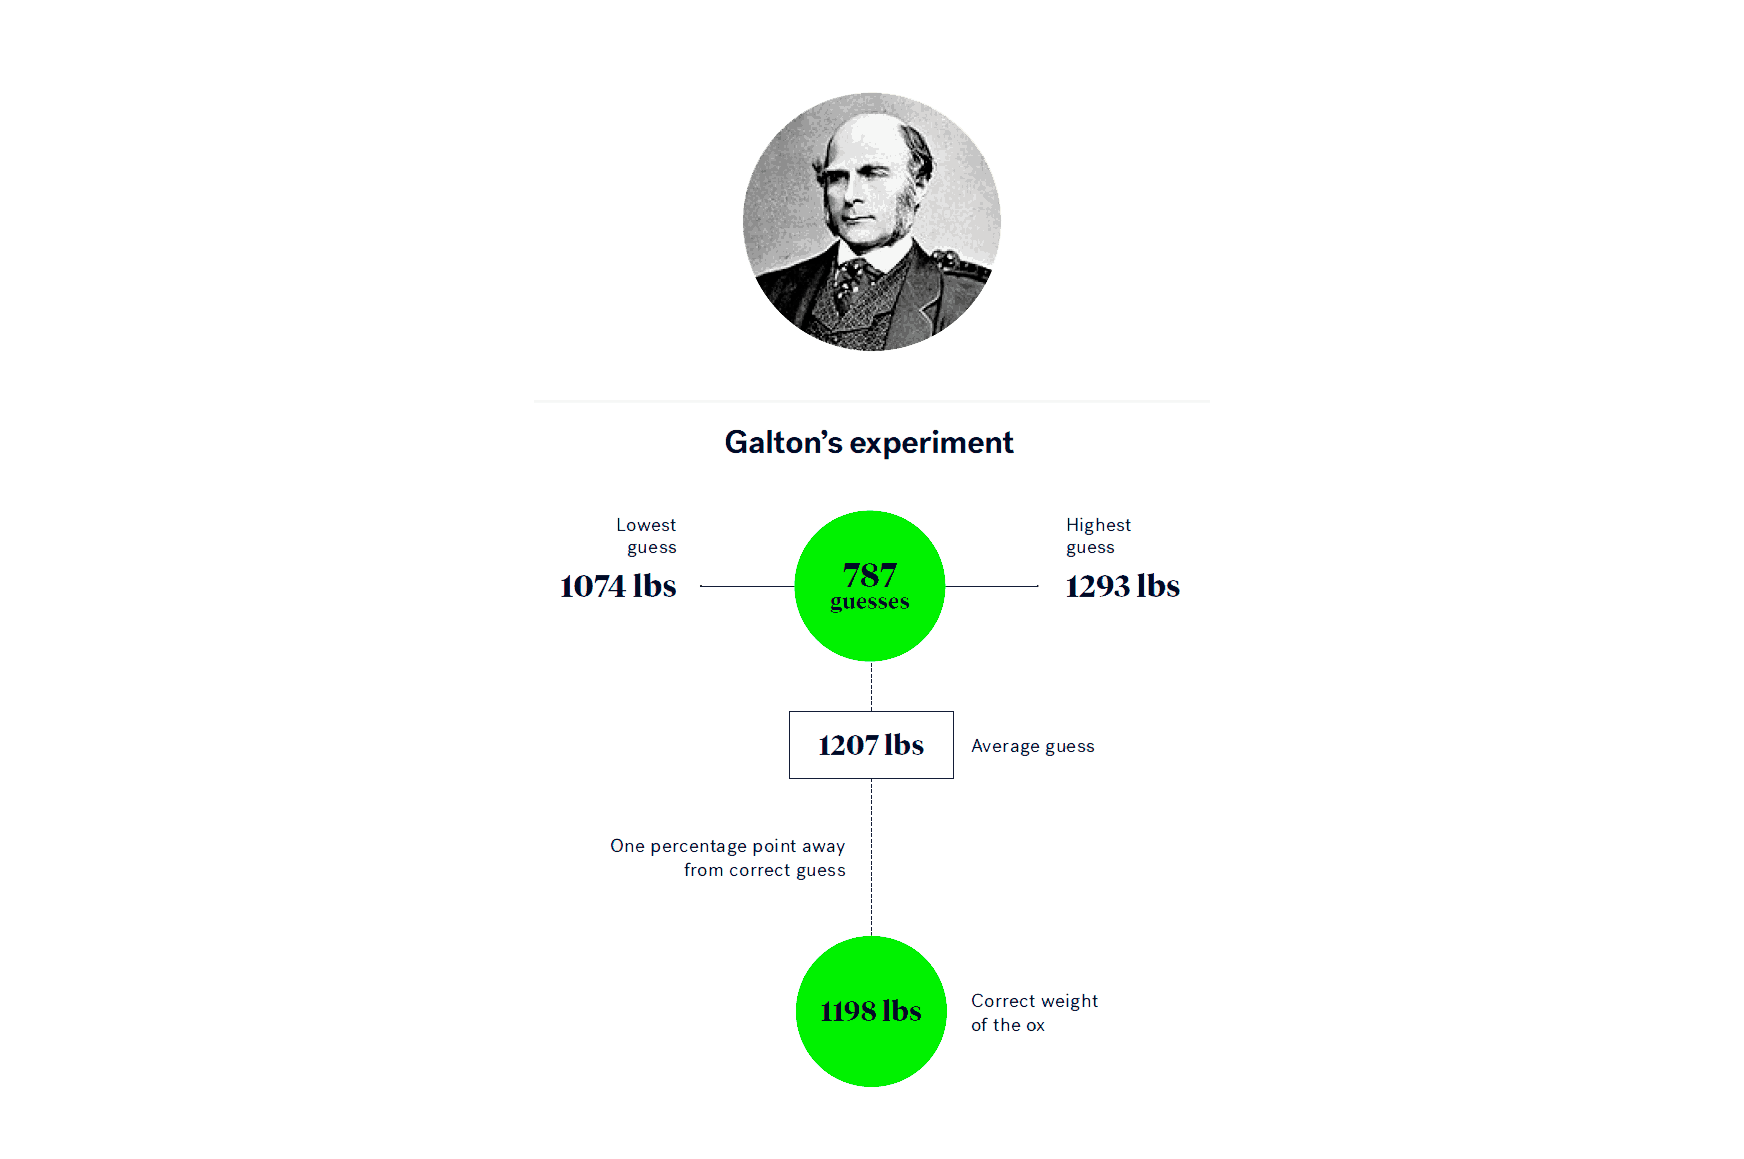 Galton's experiment I IE University